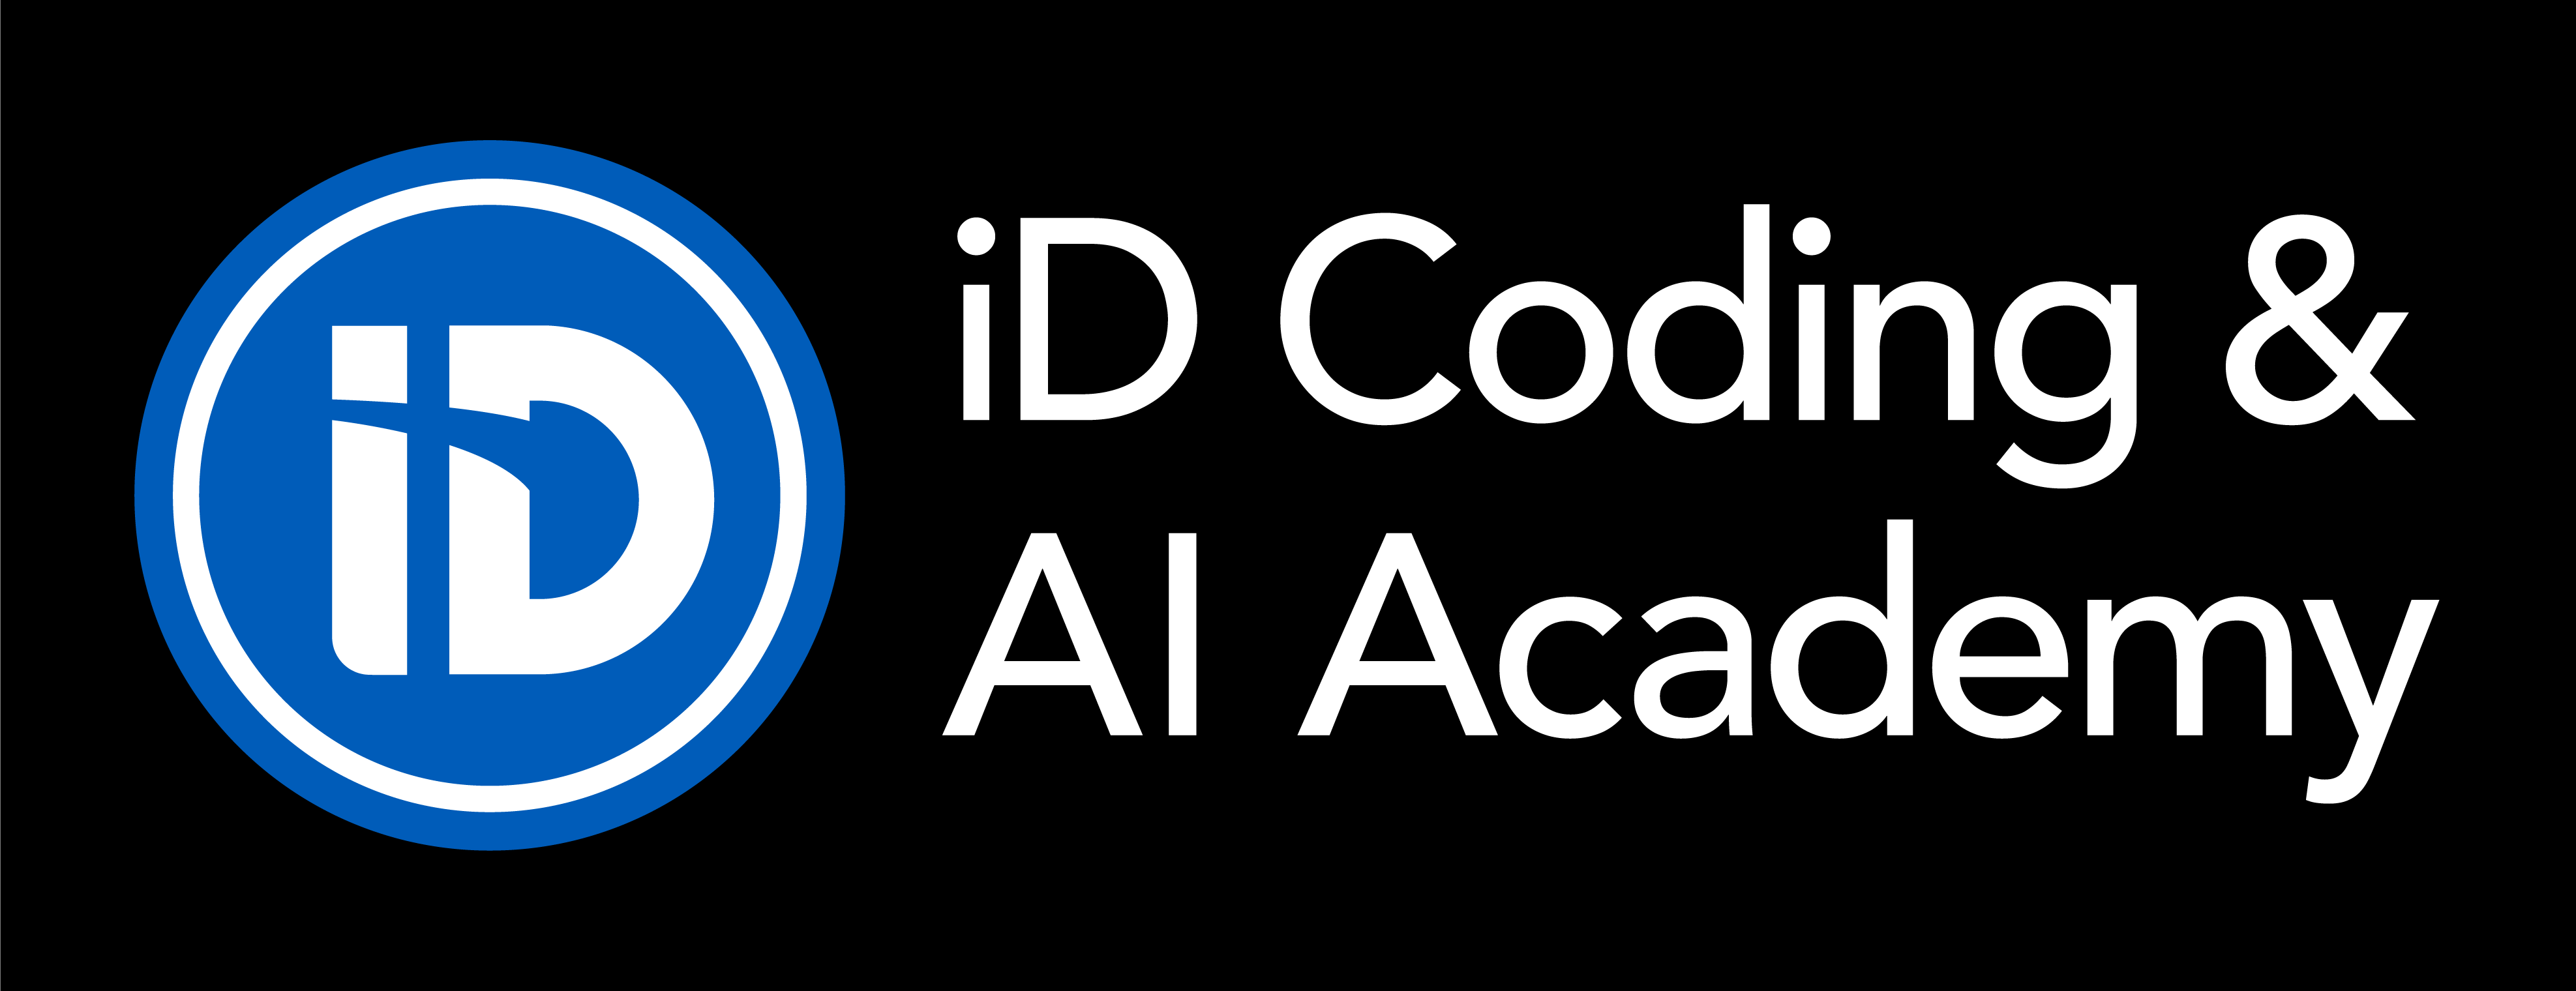 Summer Program iD Coding & AI Academy